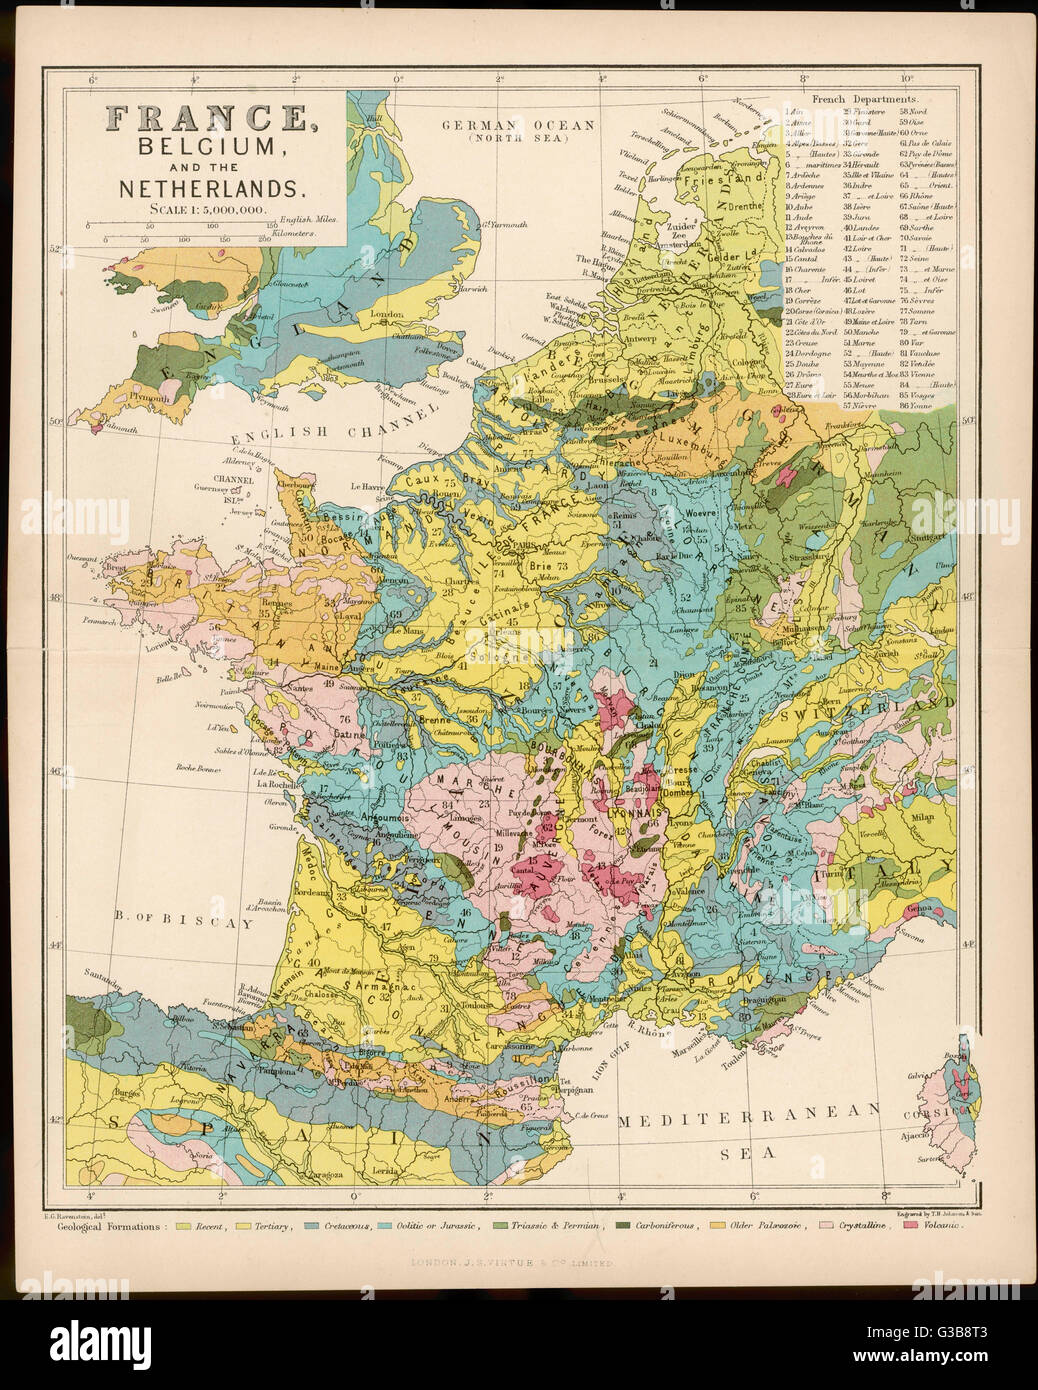 Map Of France Belgium.Map Of France Belgium And The Netherlands Date Early 20th Stock